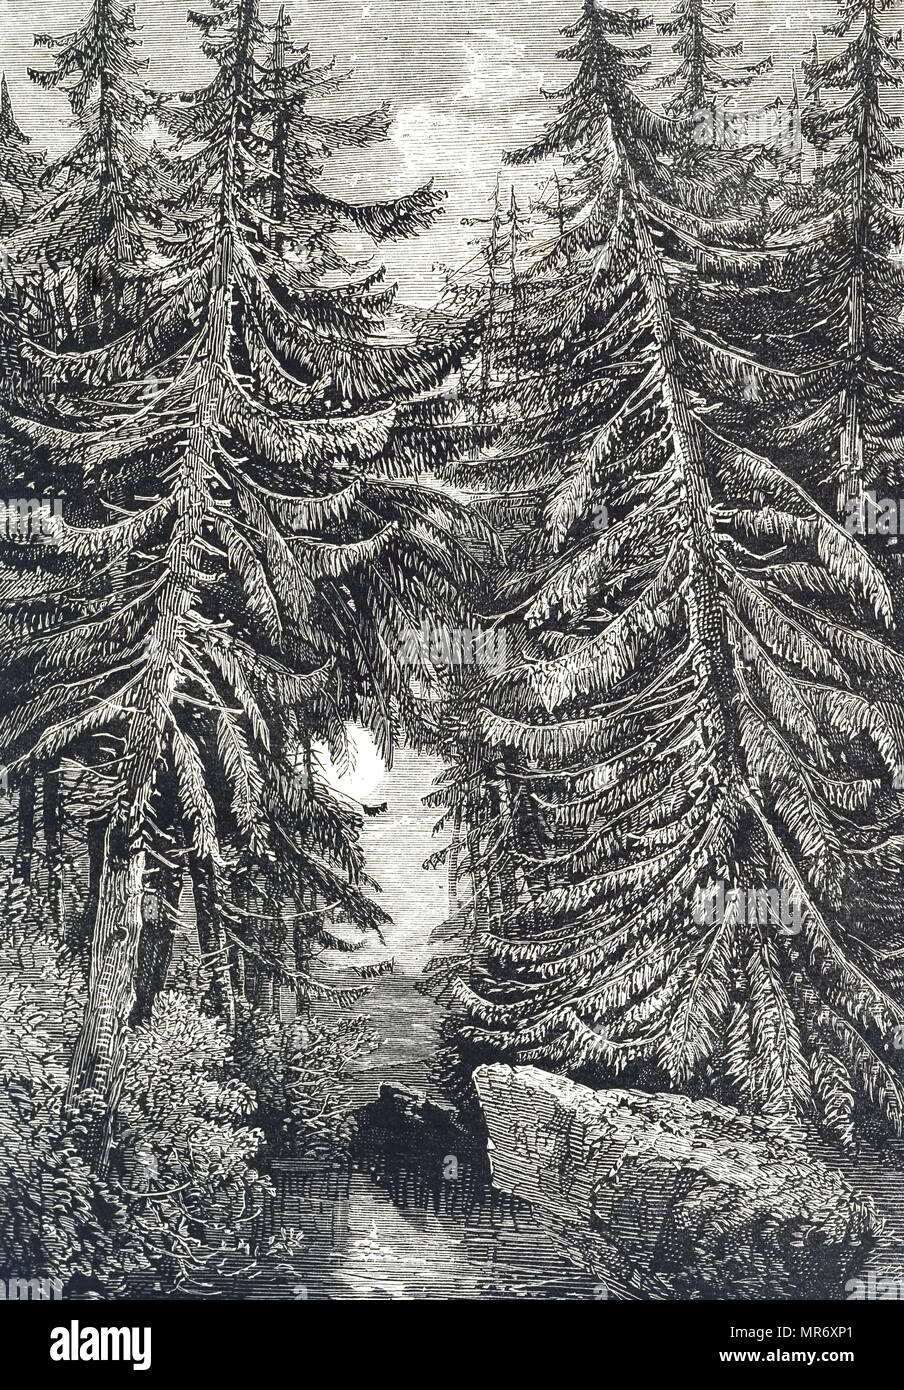 Engraving depicting fir trees. Illustrated by Richard Leitch (1827-1882) a Scottish artist. Dated 19th century - Stock Image